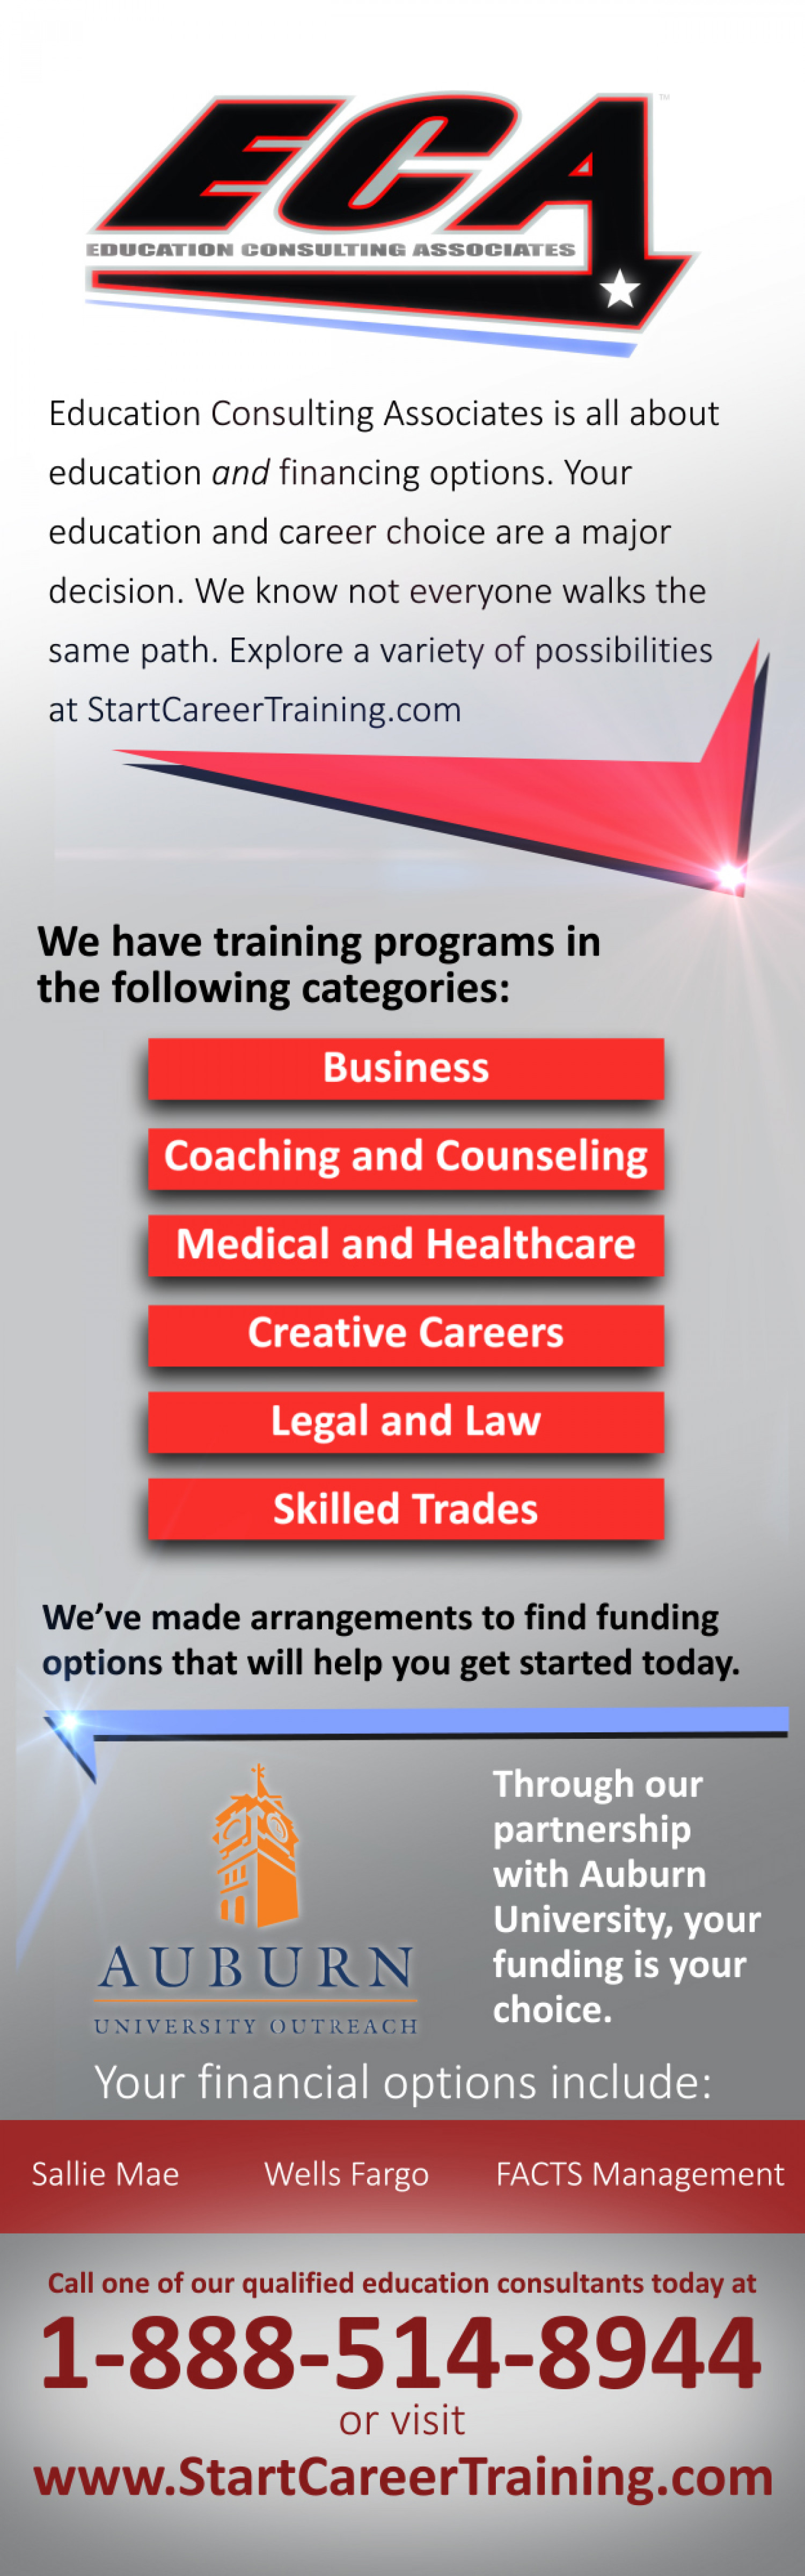 Programs and Financing Options Infographic